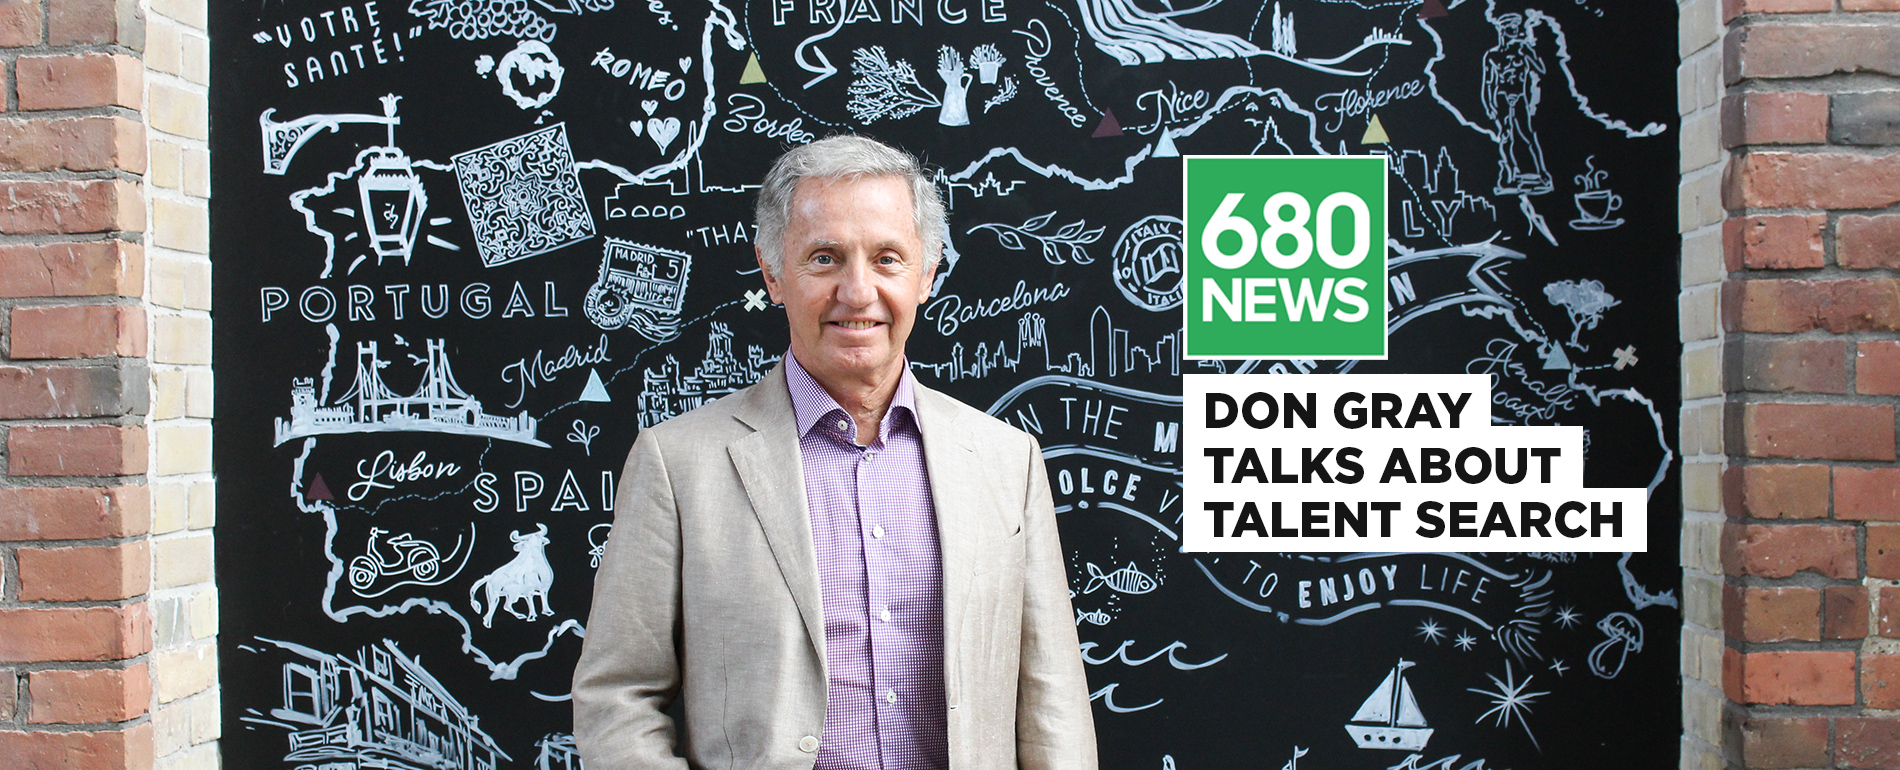 680 News Speaks to CEO Don Gray, about Growing your Business, and Acquiring the Best Talent!